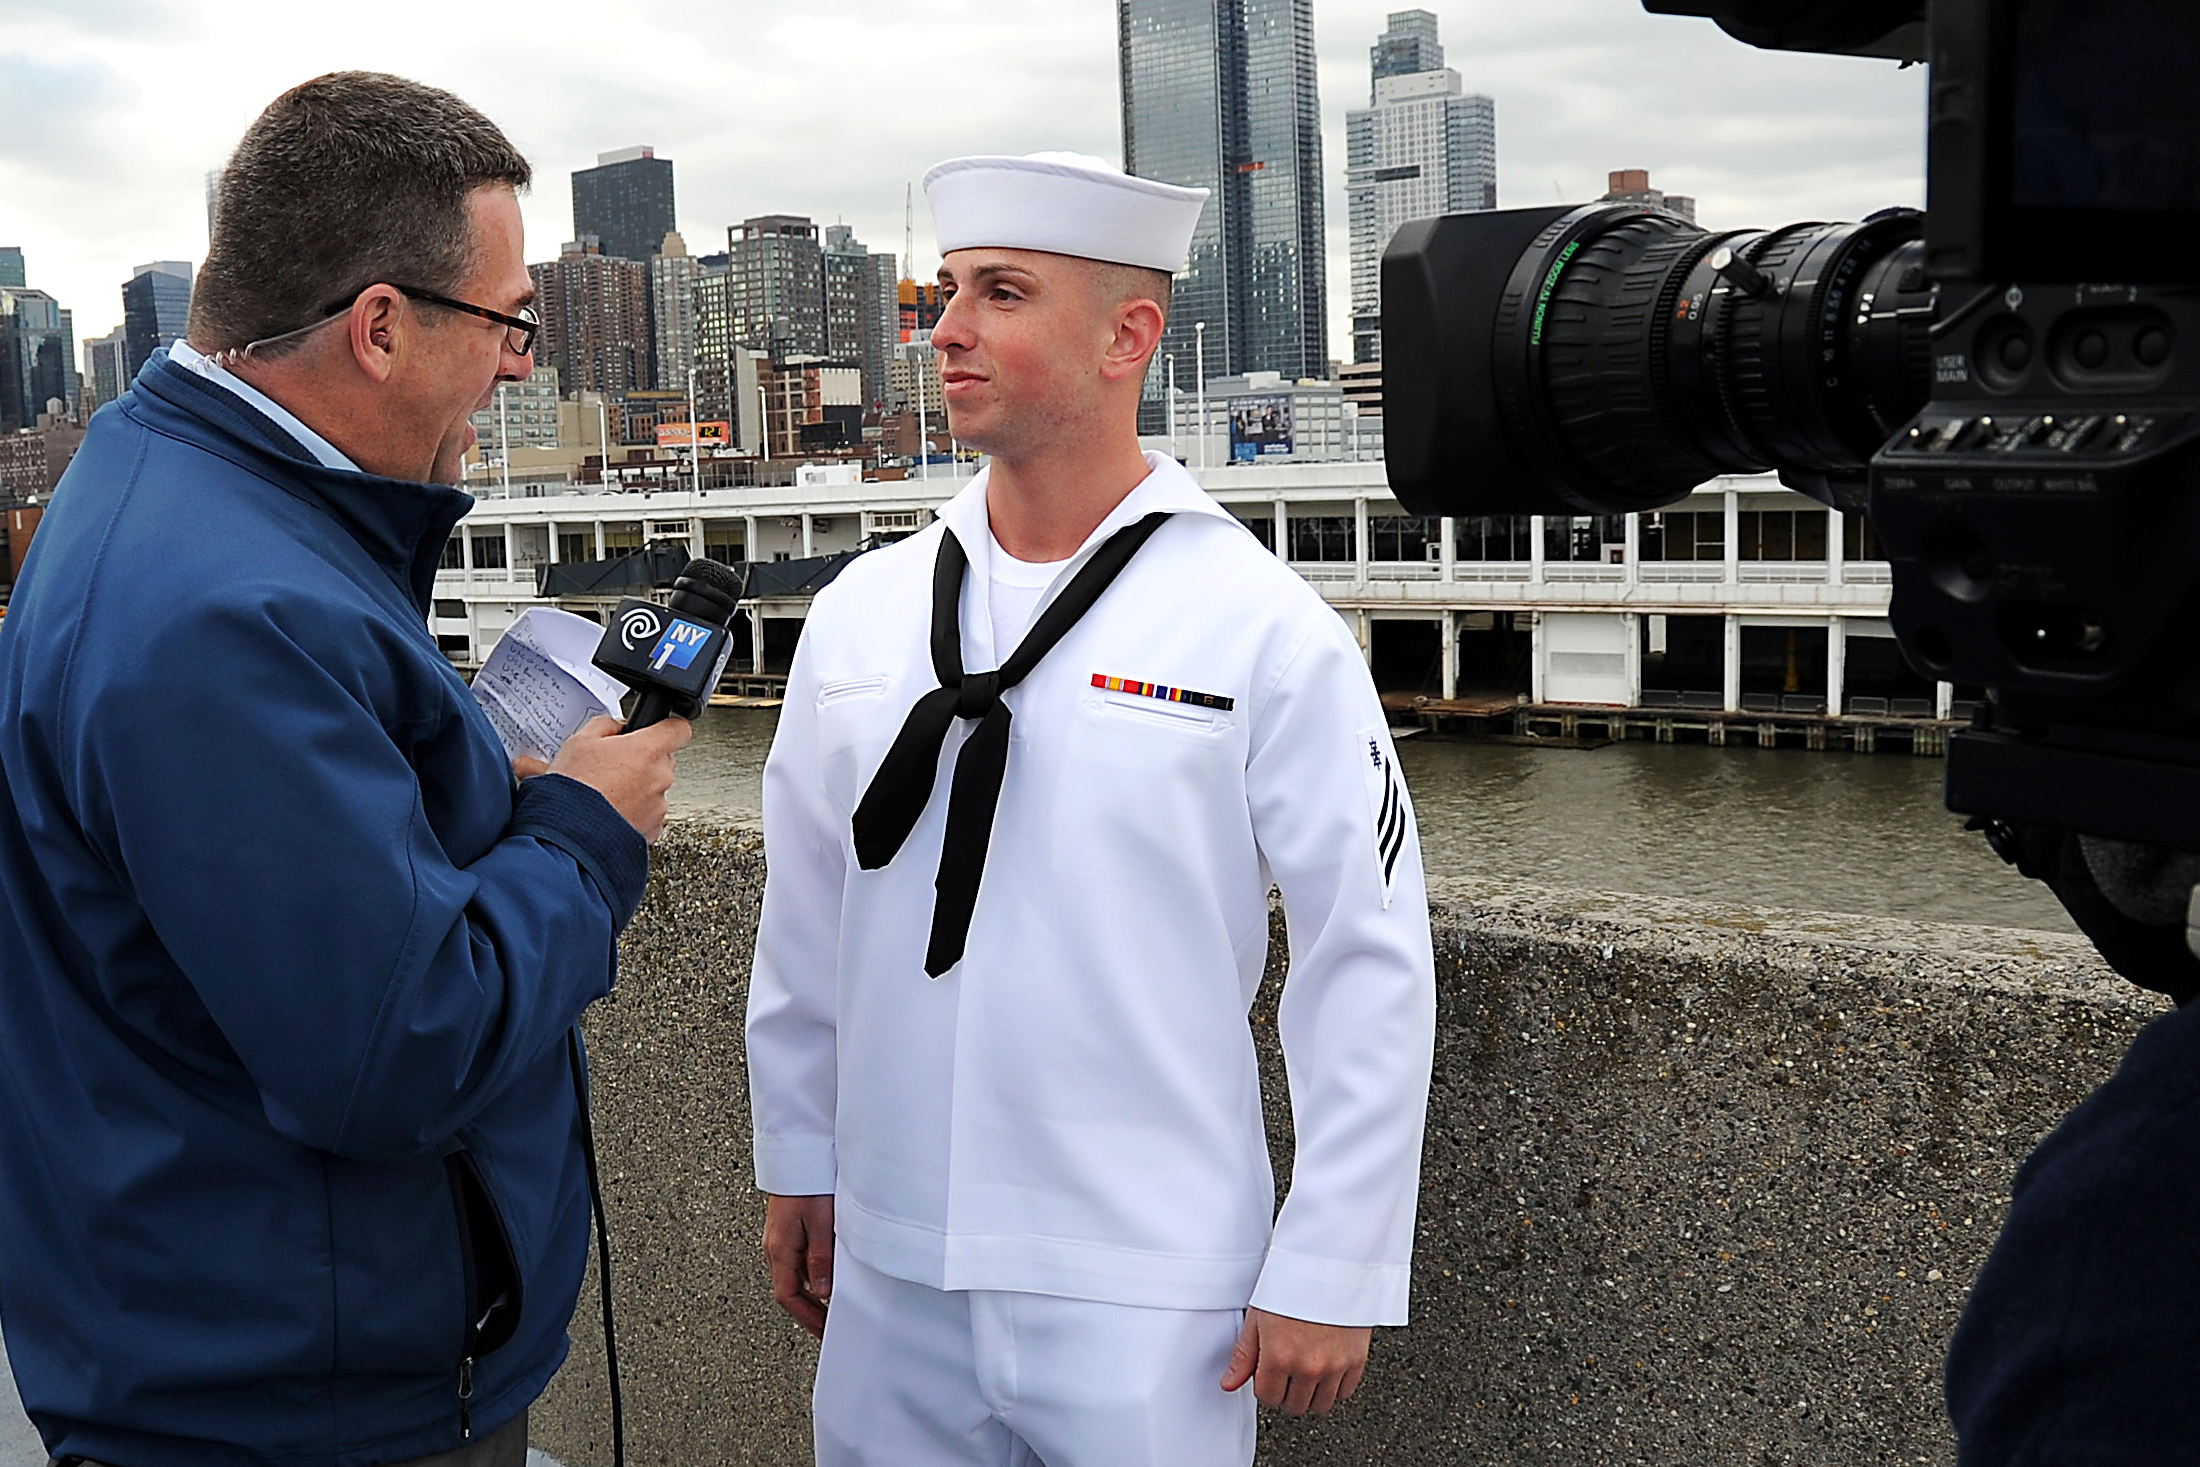 us navy seaman daniel costa speaks with a news reporter from new york 1 about what